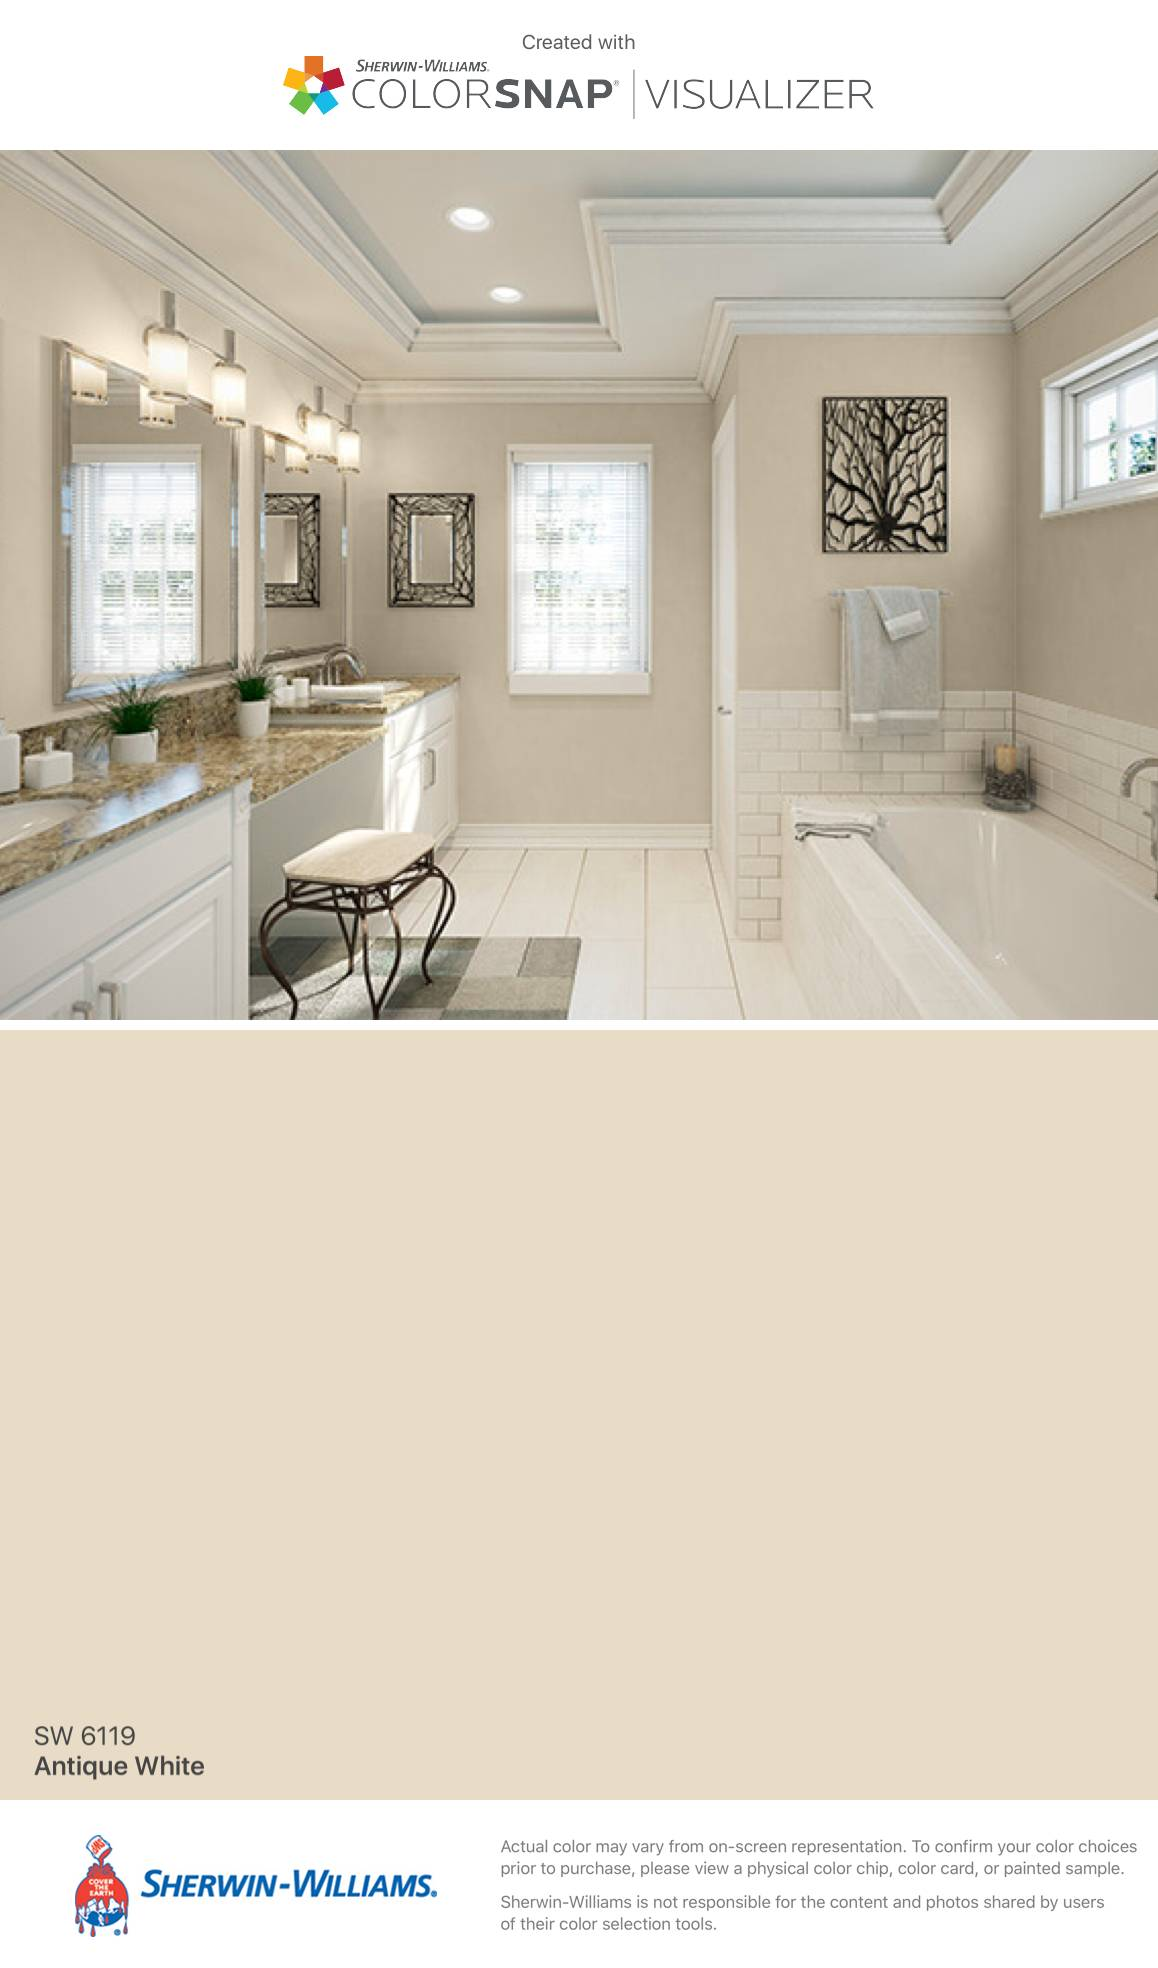 Silver Strand by Sherwin Williams Lovely I Found This Color with Colorsnap Visualizer for iPhone by